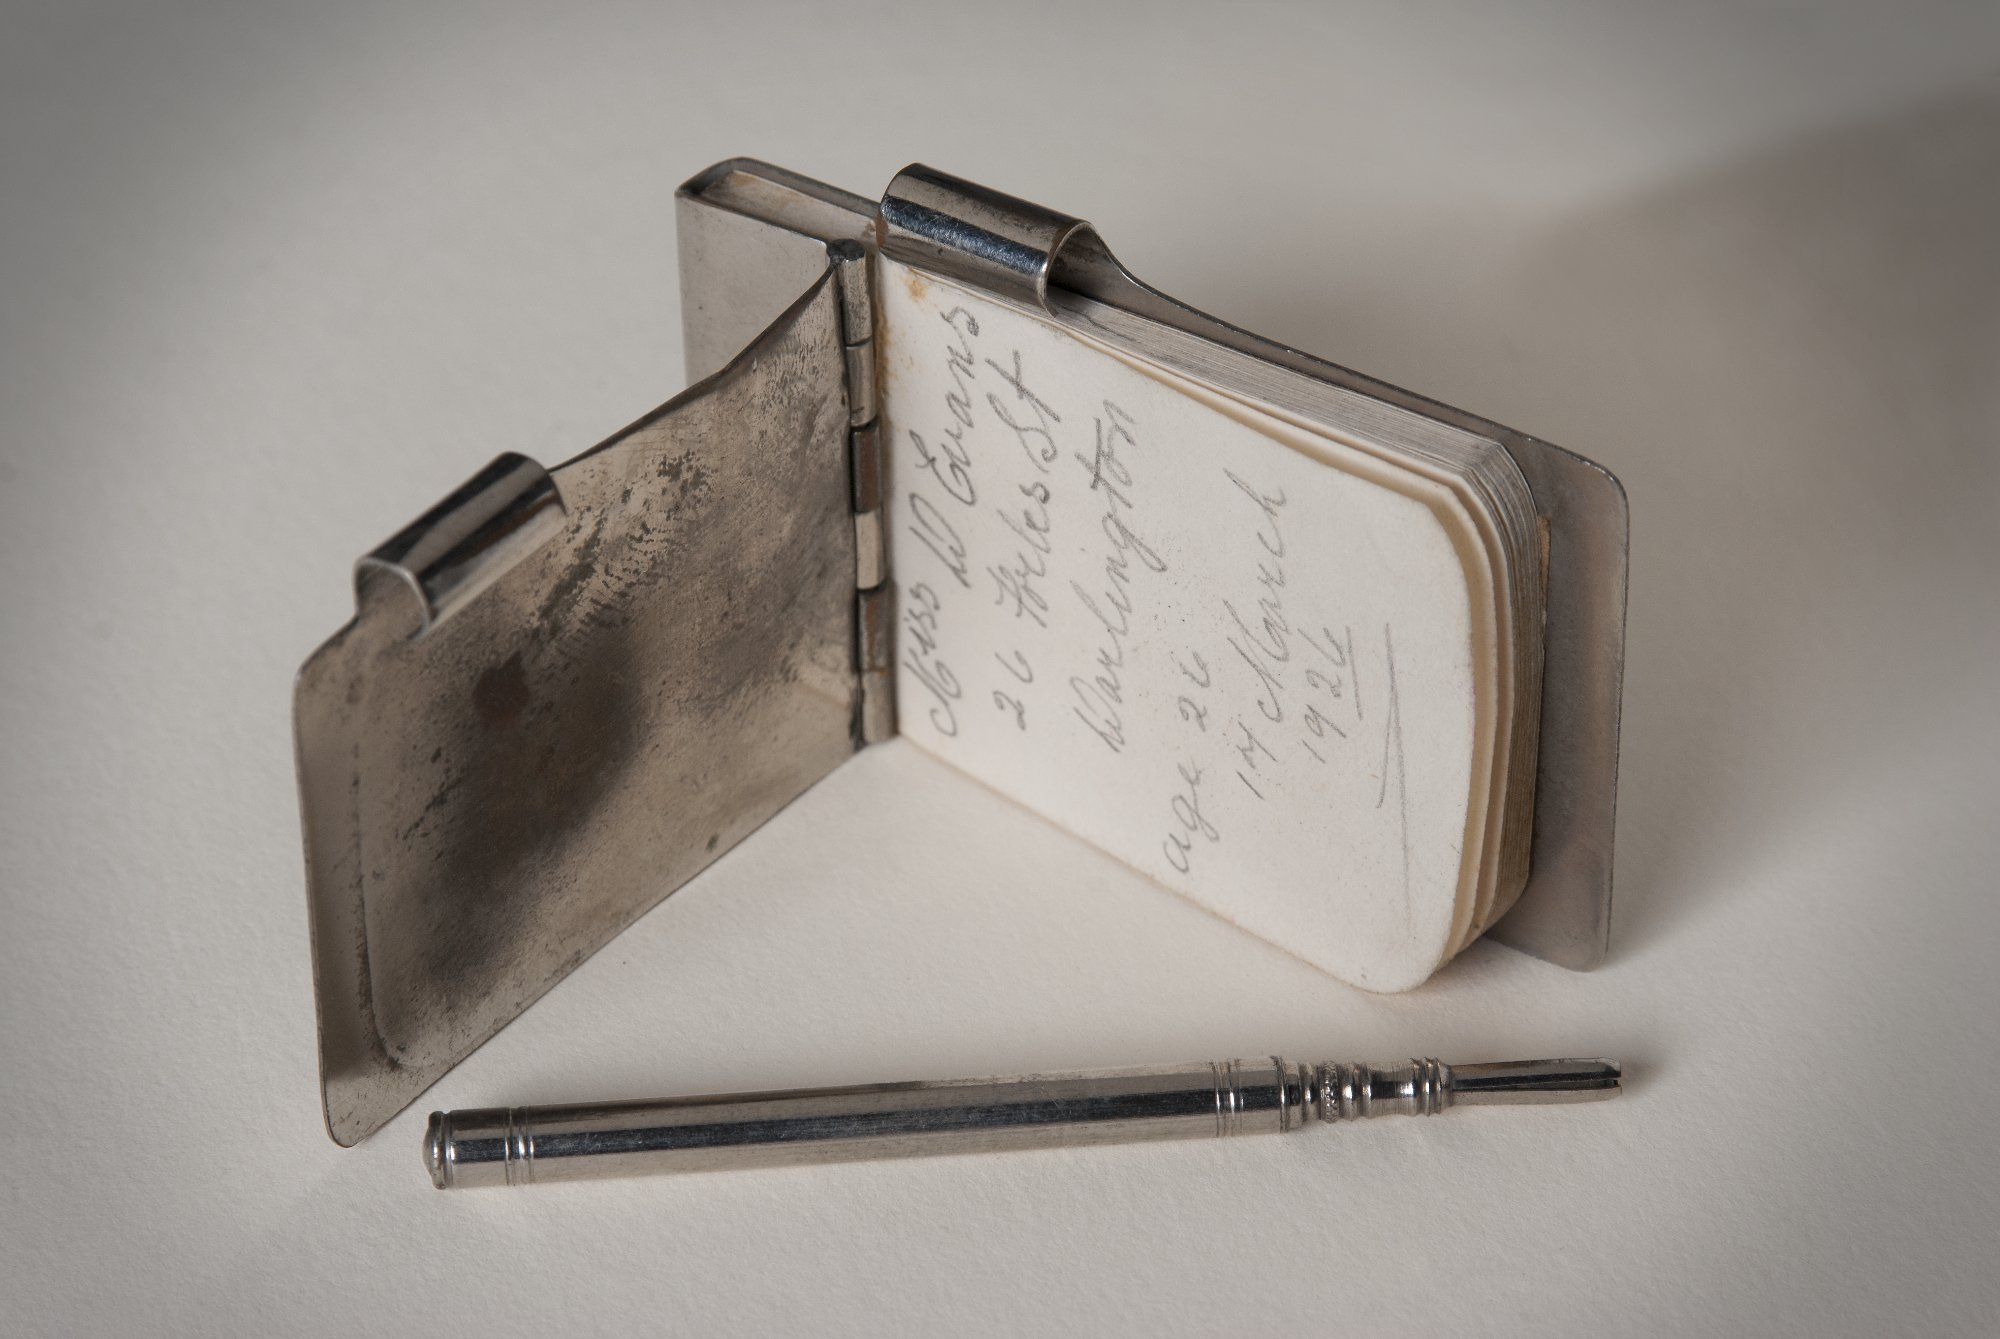 A silver notebook found in a divorce file